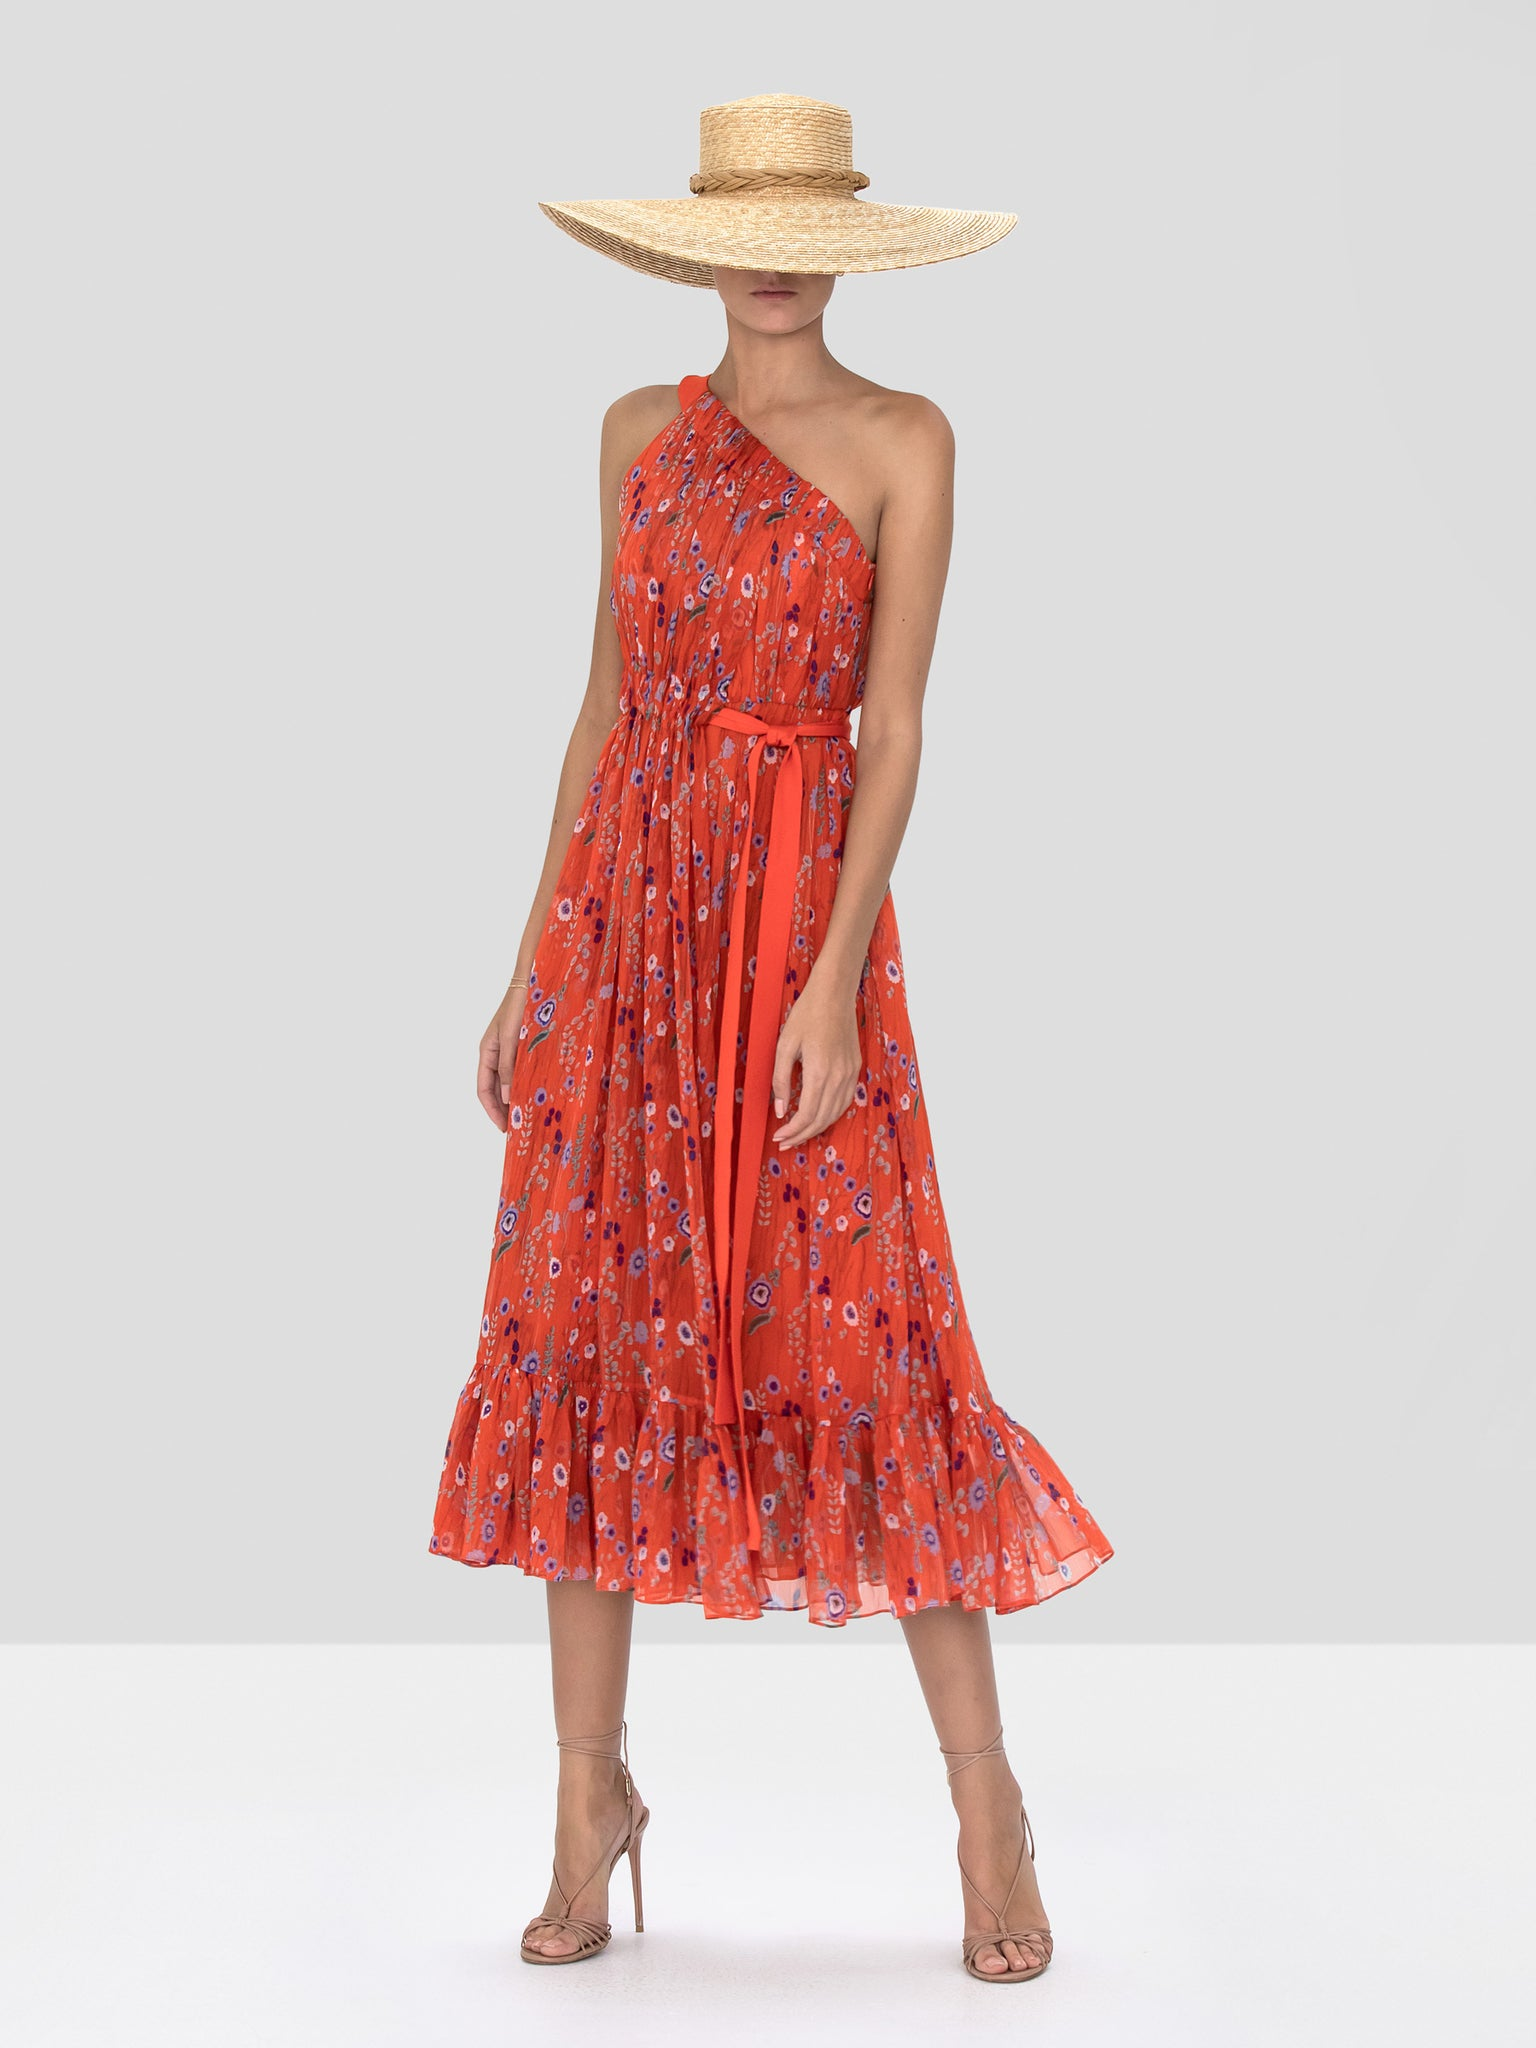 Alexis Teodora Dress in Red Bouquet from the Spring Summer 2020